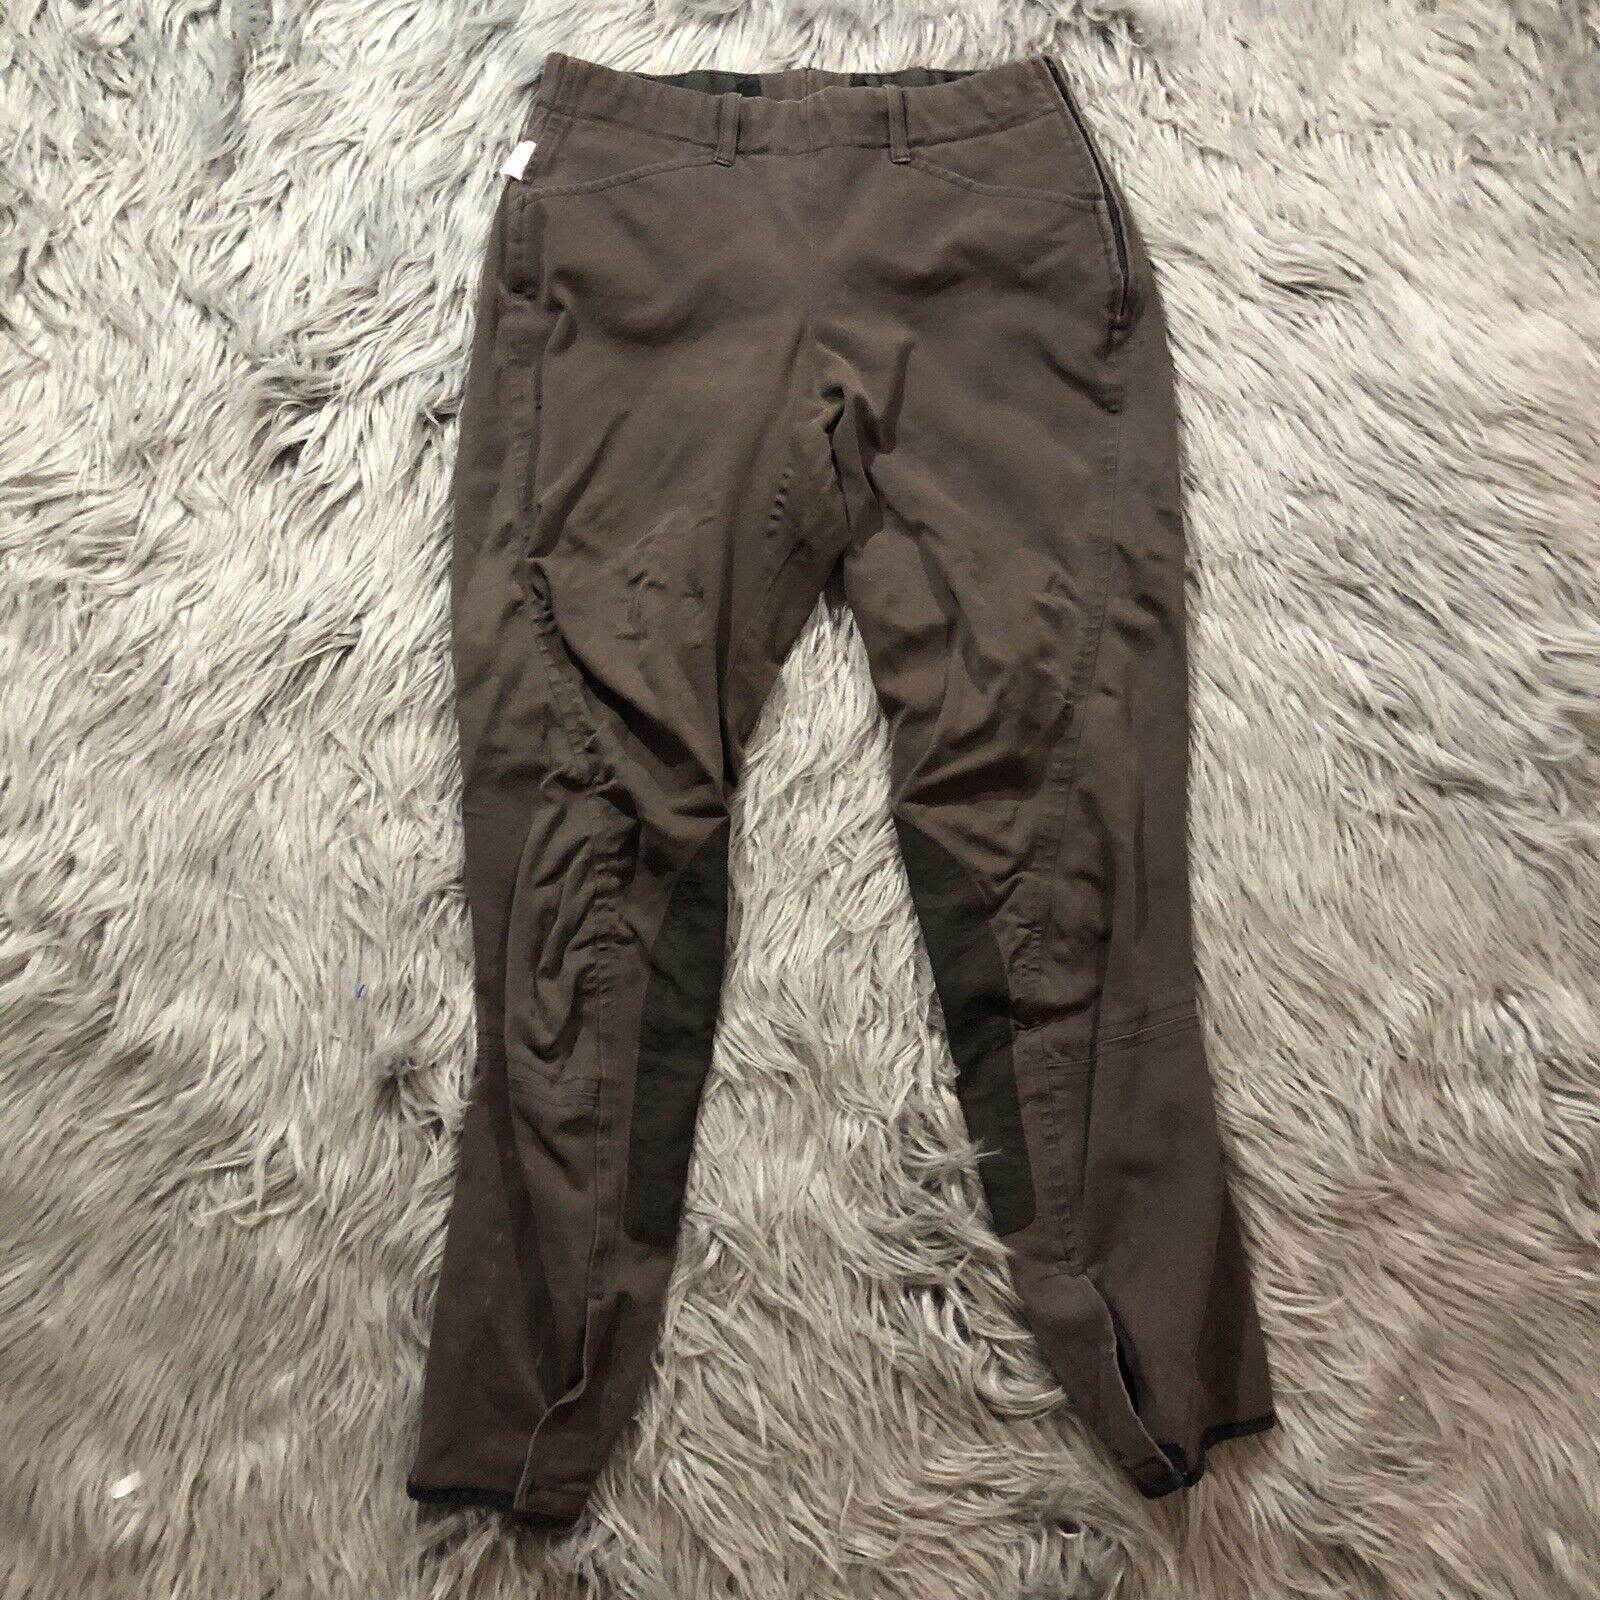 VTG The Tailored Sportsman English  Riding Pants Sz 26 Breeches Brown Made In USA  no tax